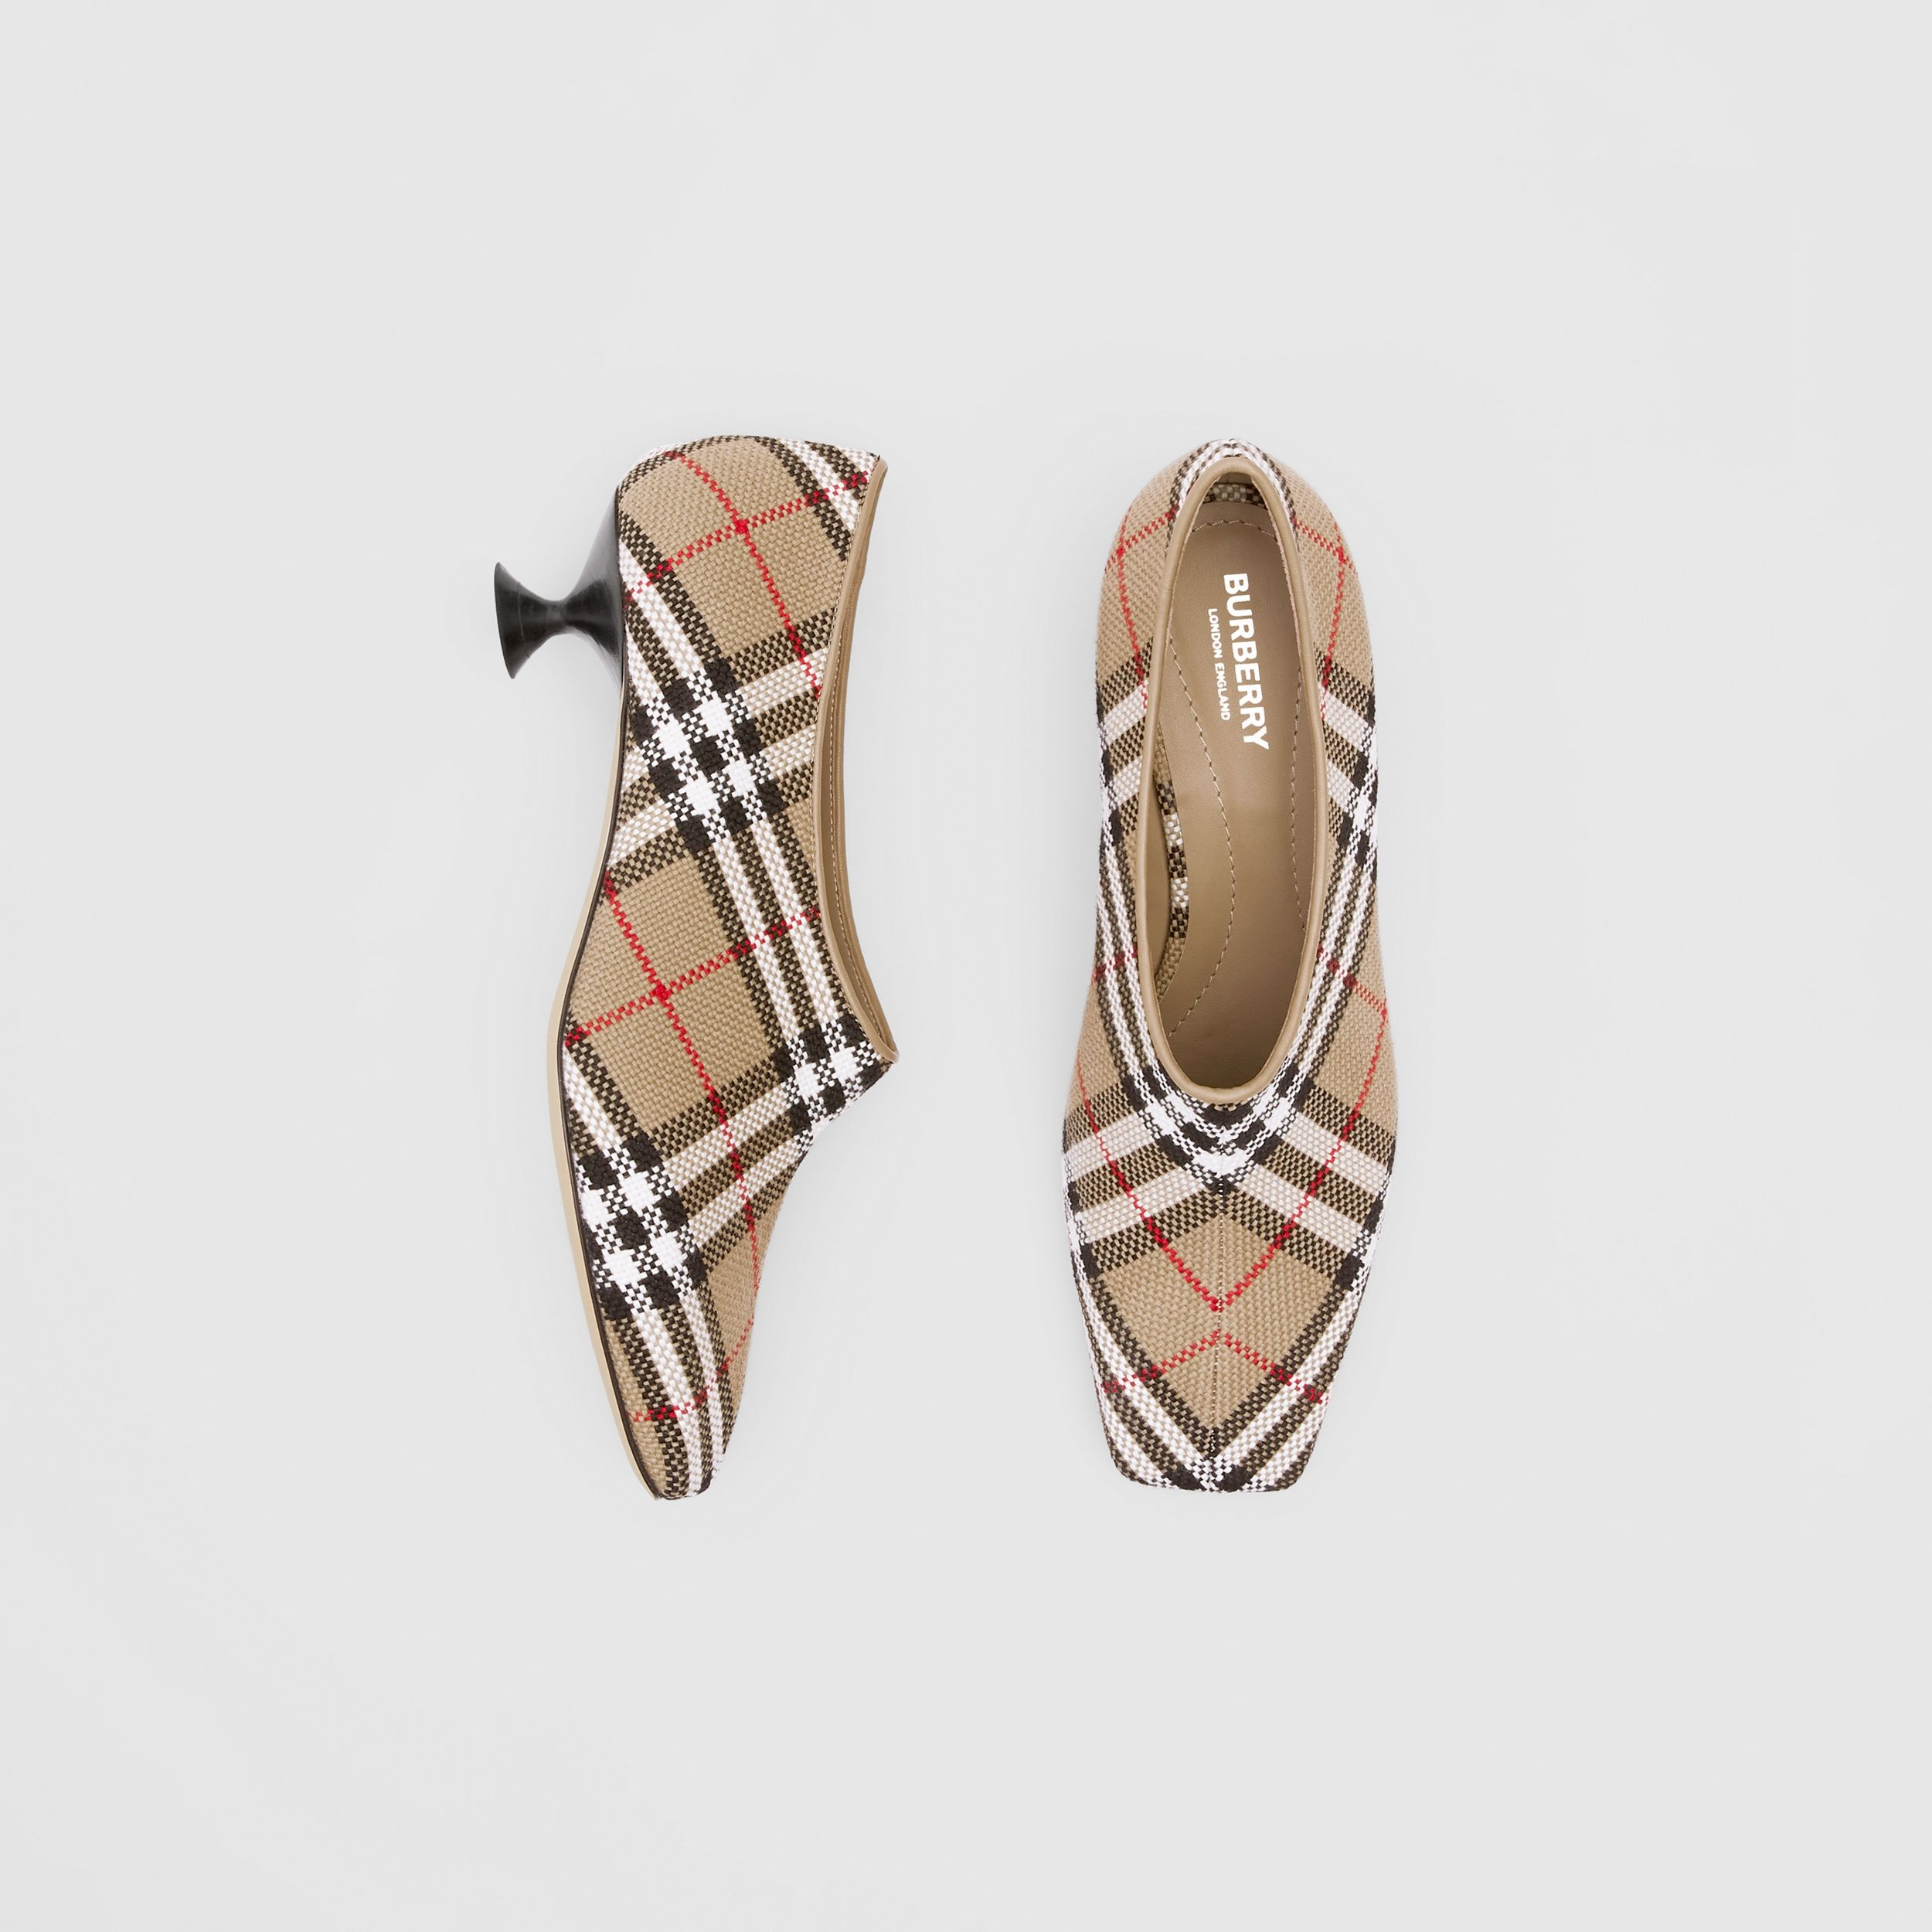 Latticed Cotton Kitten-heel Pumps in Archive Beige - Women | Burberry - 1